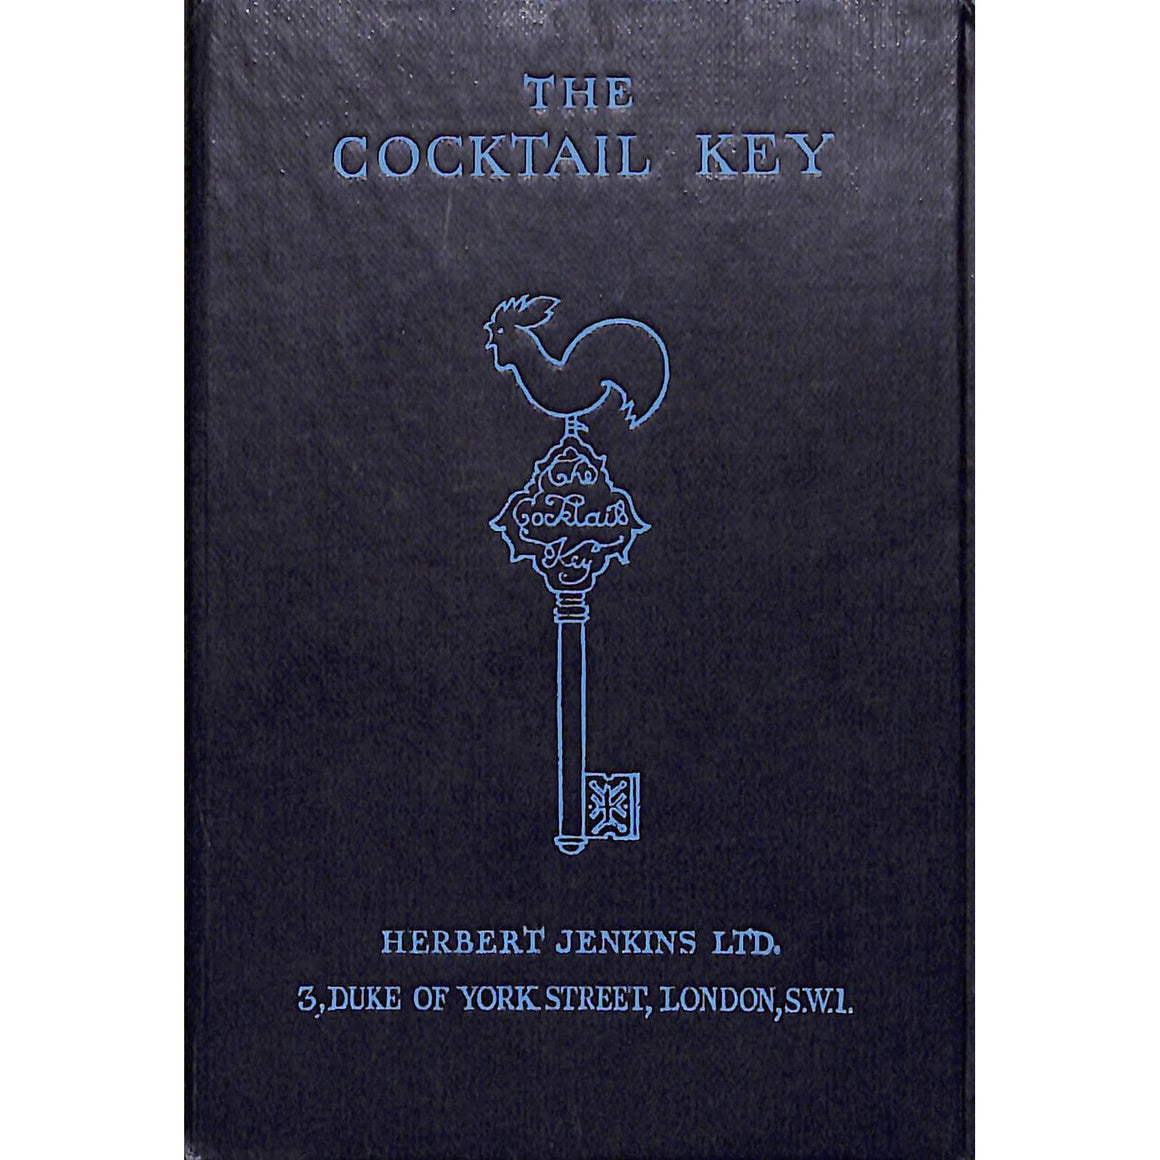 The Cocktail Key